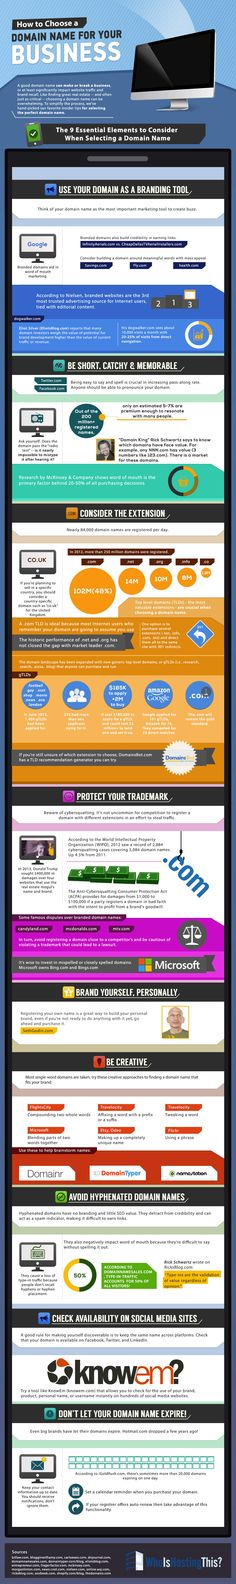 Are you interested in how to create the best domain name? This infographic shows 9 important advices that will help you with it.